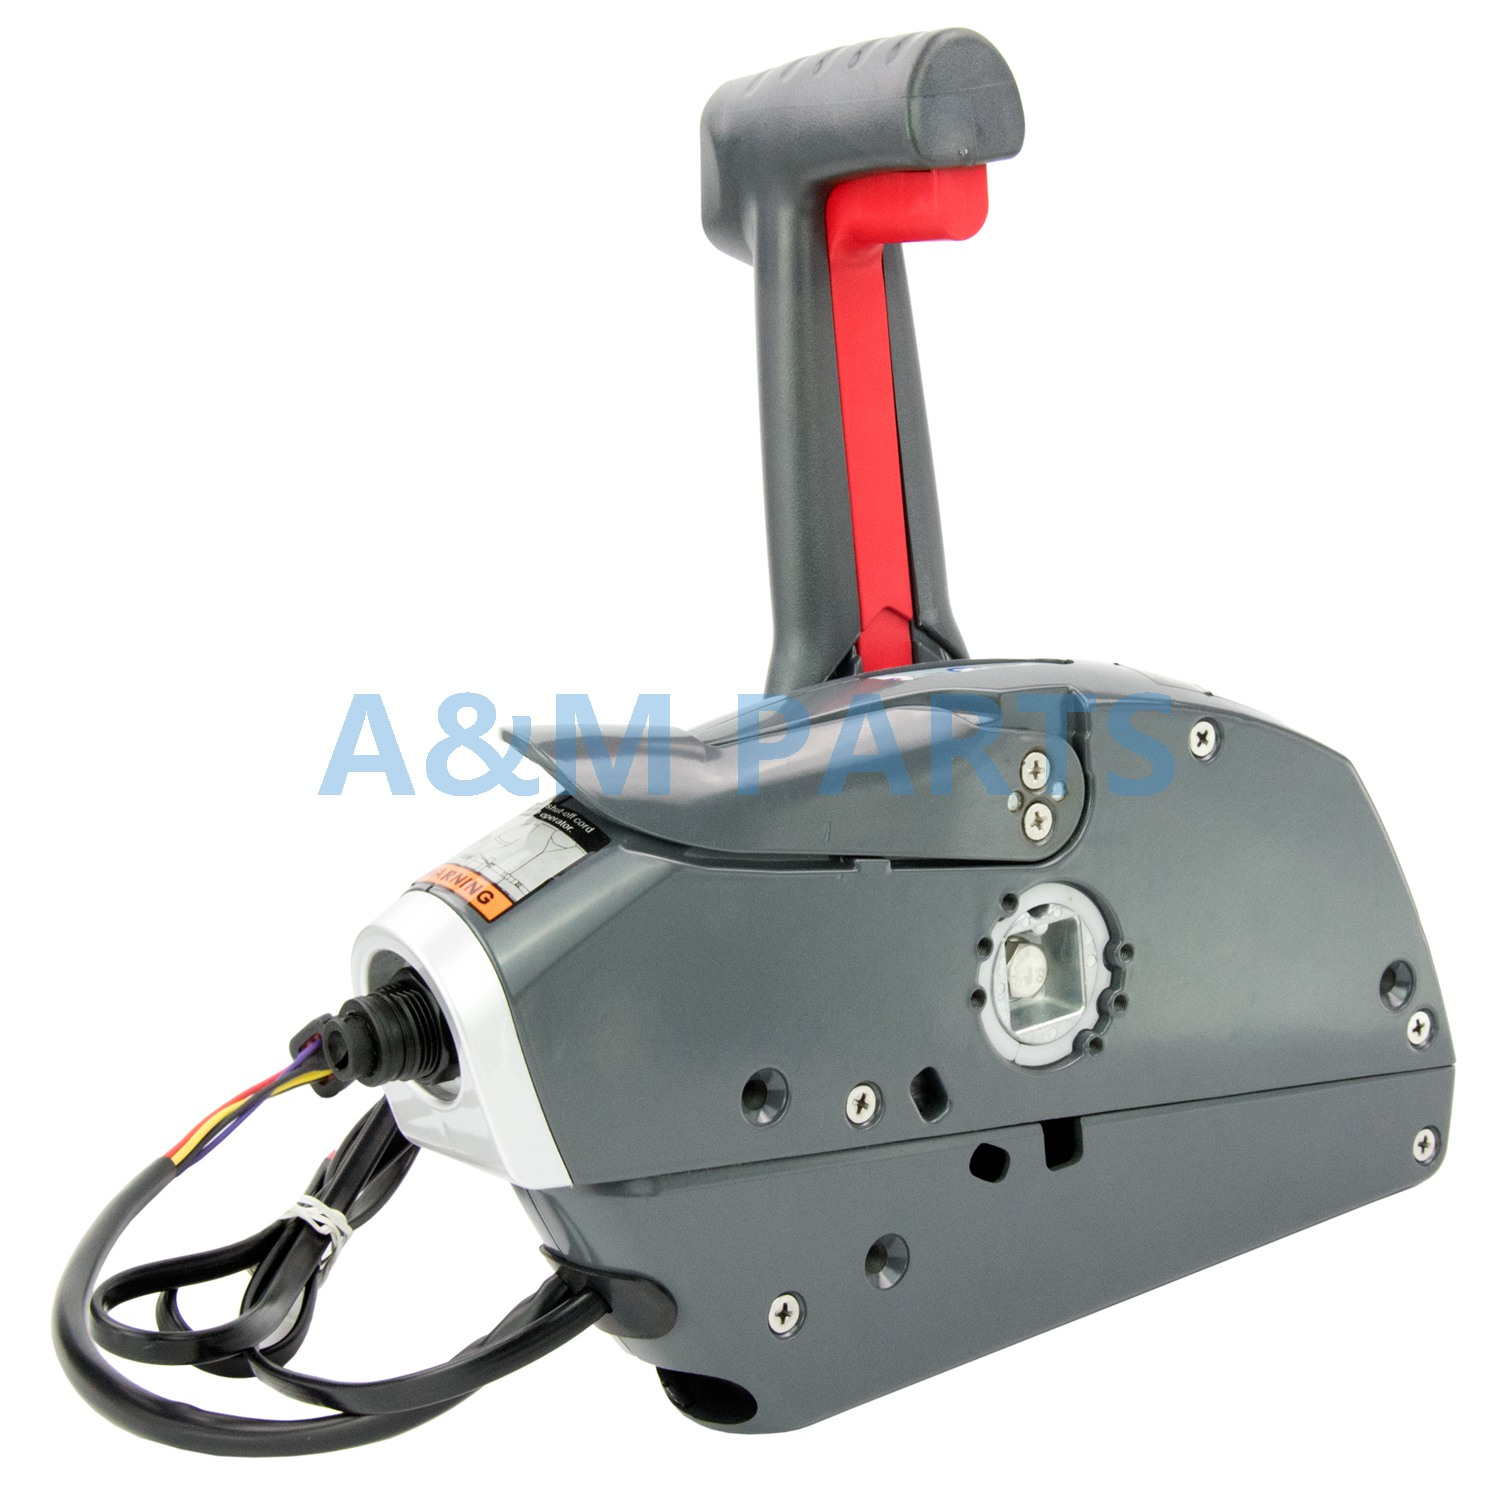 Aliexpress.com : Buy Outboard Side Mount Remote Control Box for BRP Johnson  Evinrude Throttle/Shift Box from Reliable Marine Hardware suppliers on A&M  PARTS ...